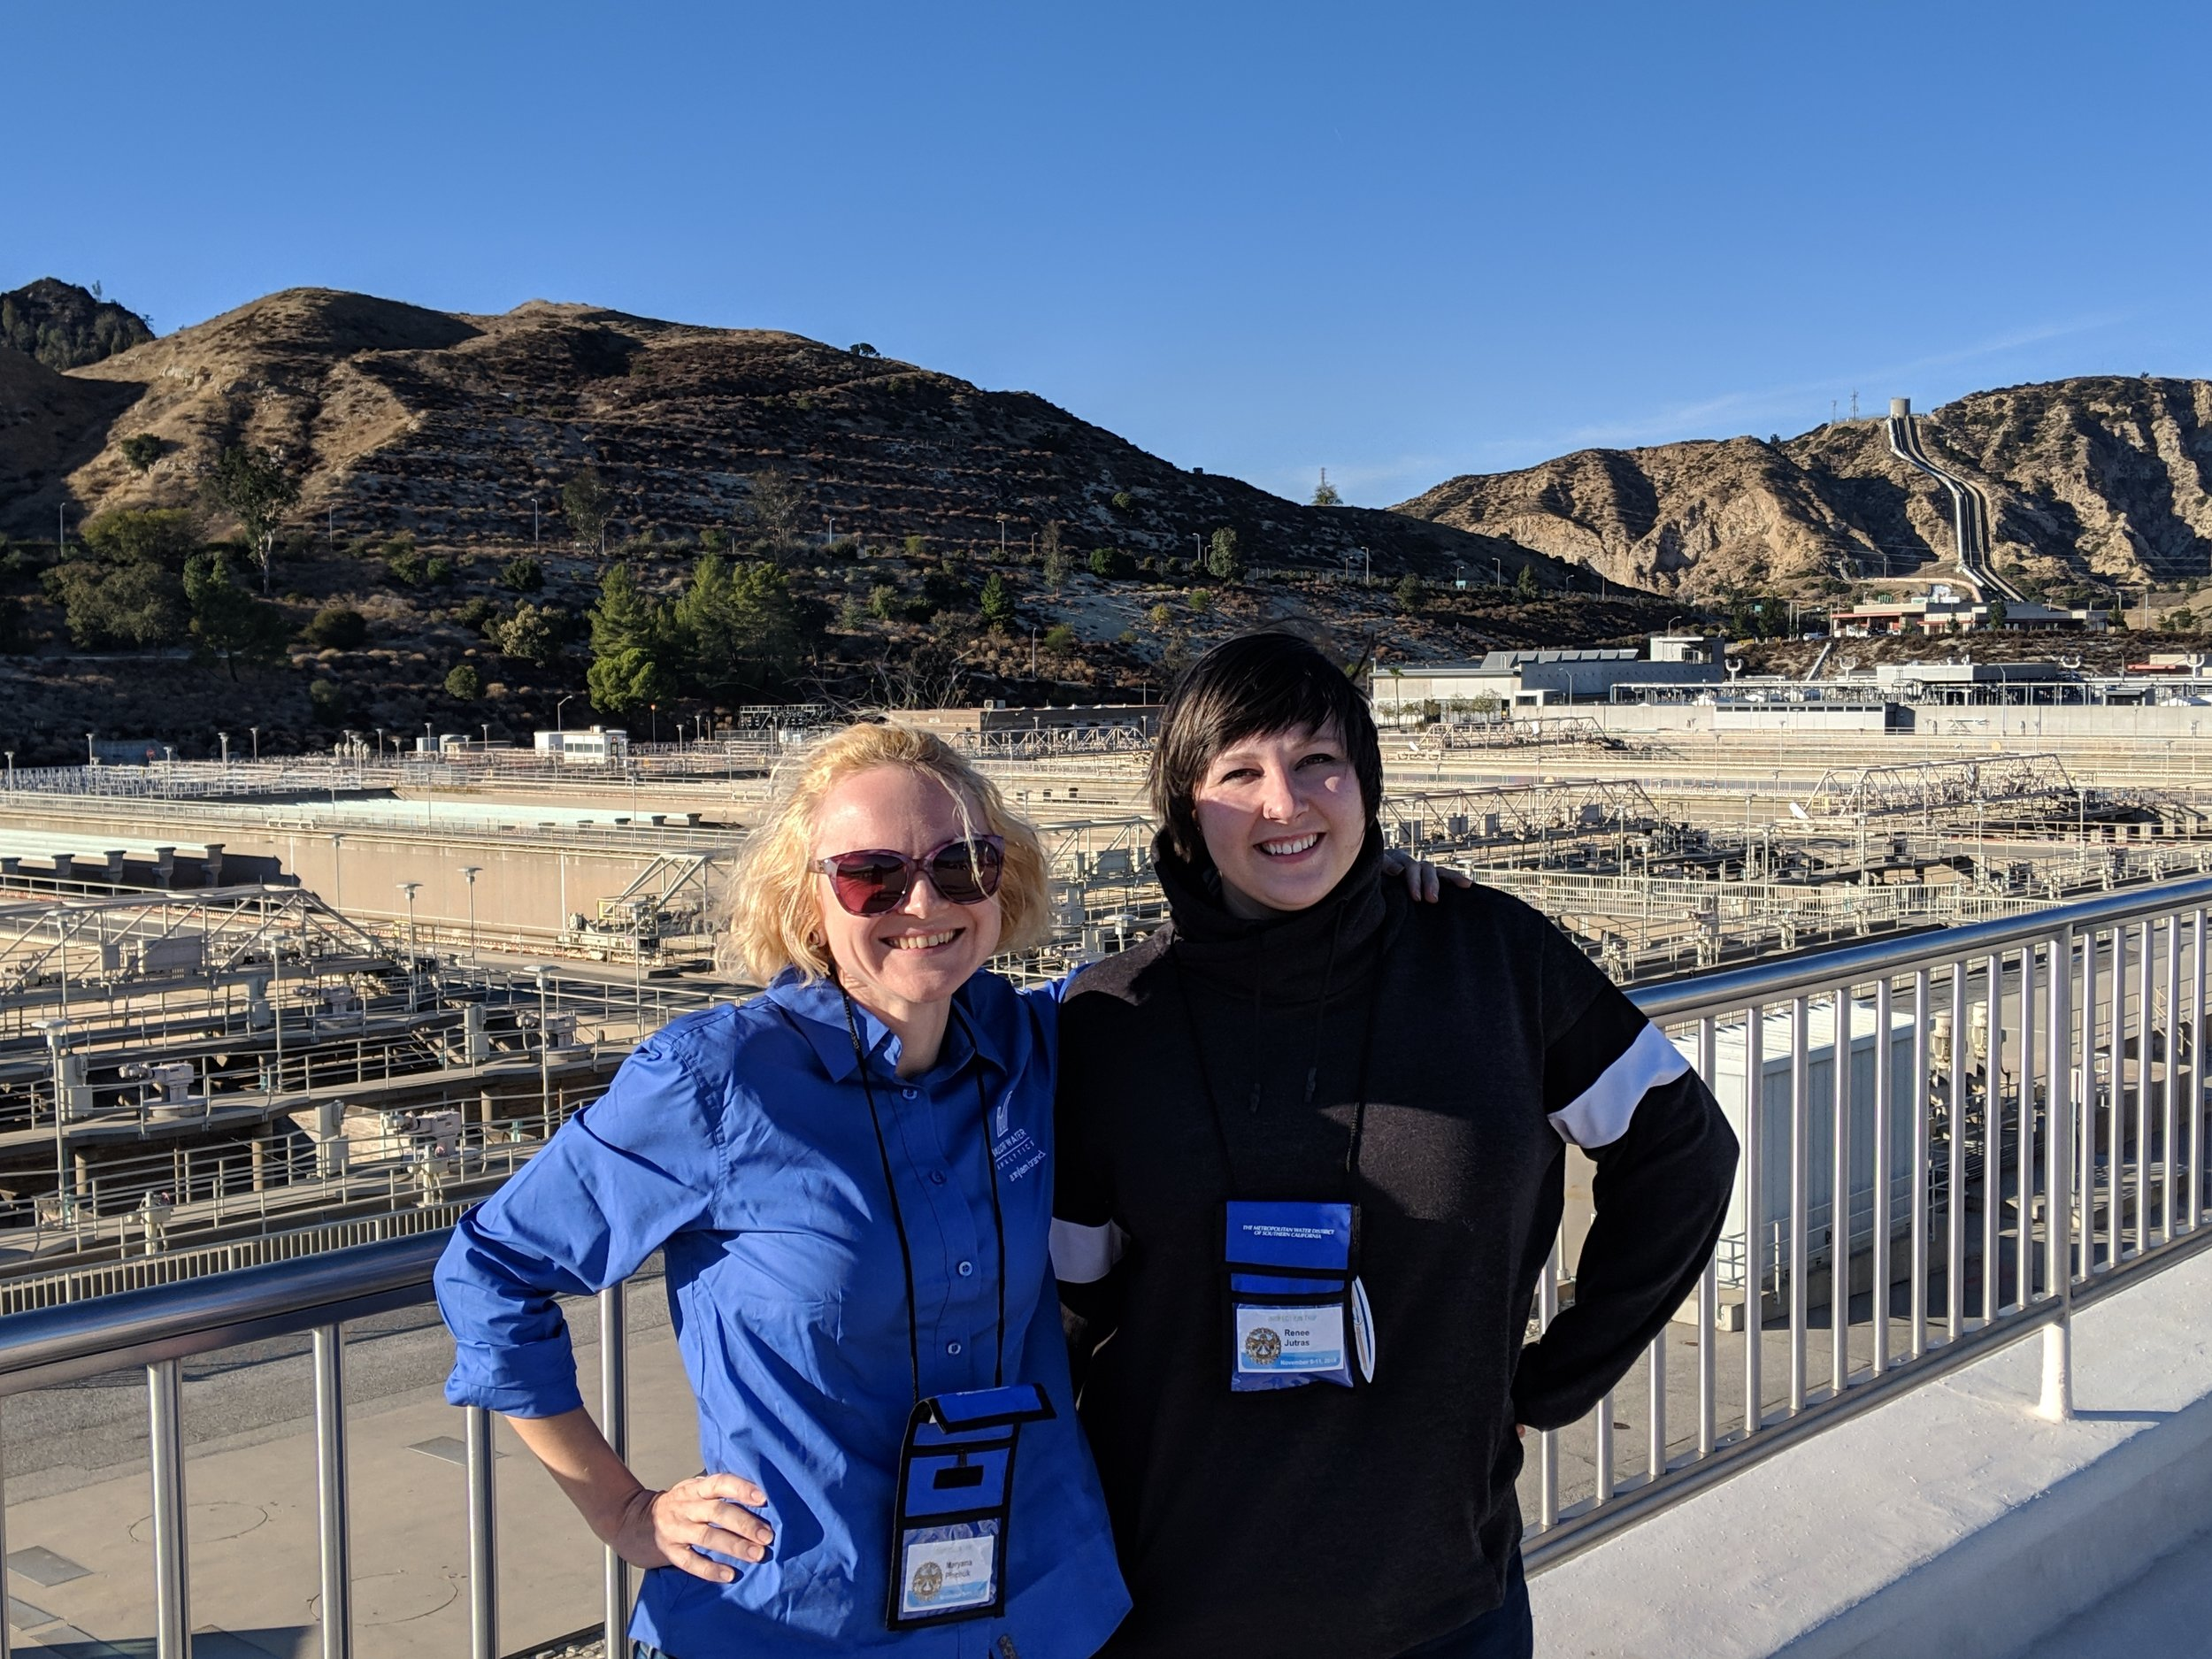 Maryana and Renee from Valor at the Jensen Water Treatment Plant, with the Los Angeles Aqueduct in the background.